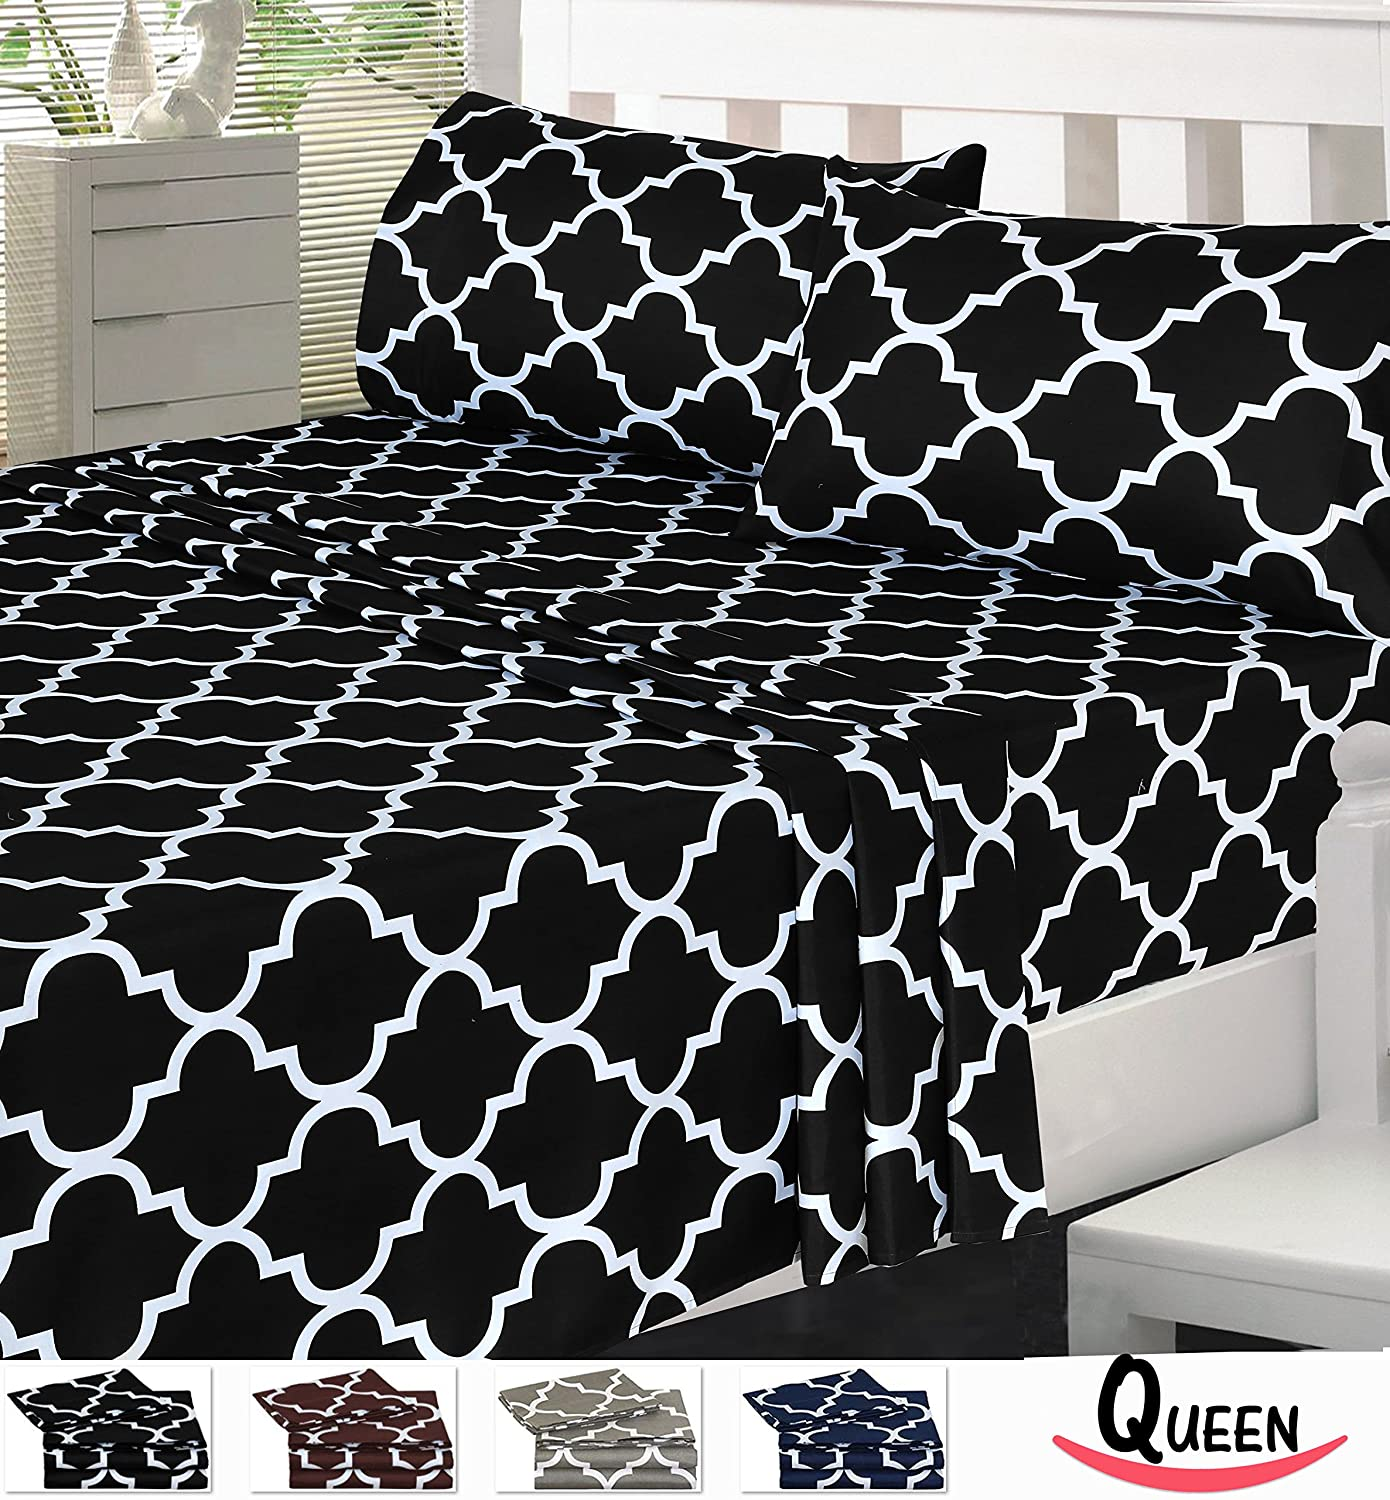 Black bed sheets pattern - Printed Bed Sheet Set Queen